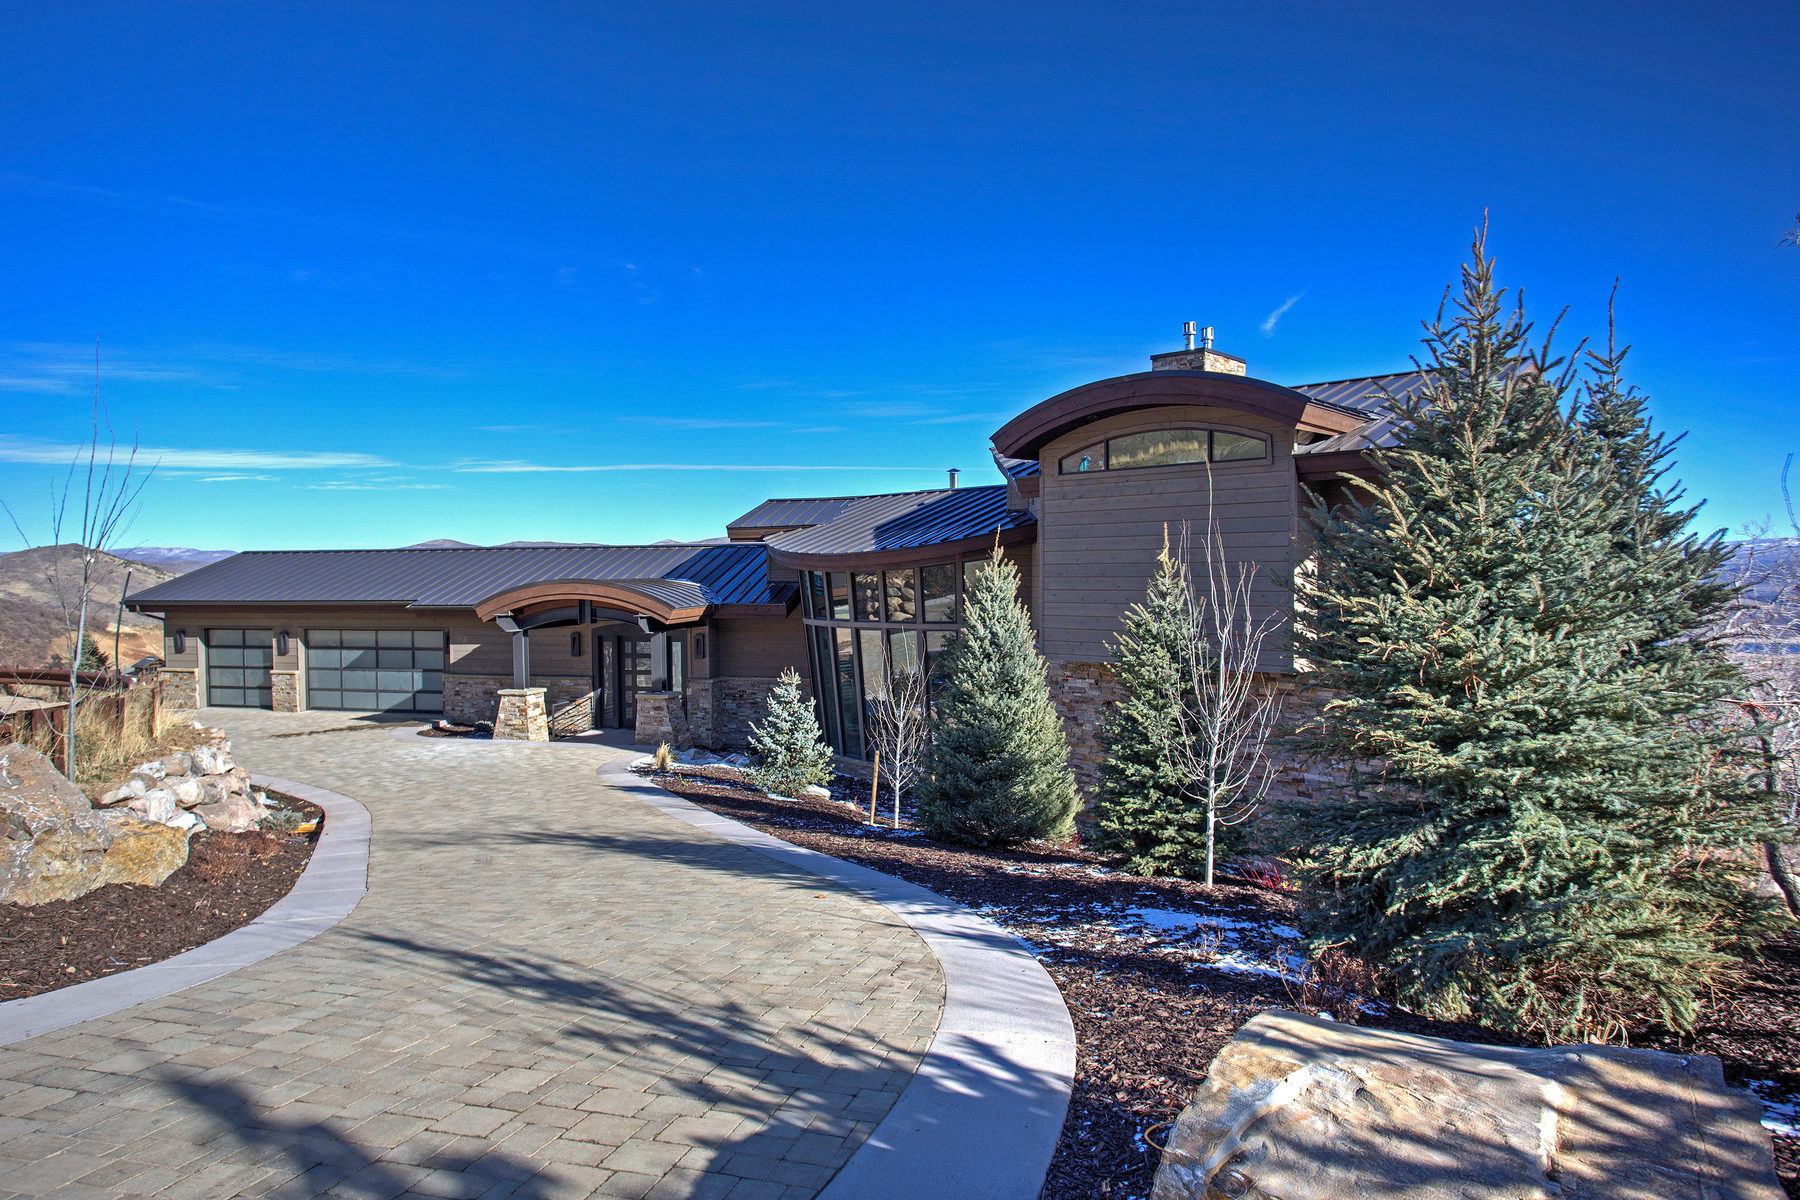 Single Family Home for Sale at New Construction in Deer Crest 2847 W Deer Pointe Dr Park City, Utah 84060 United States